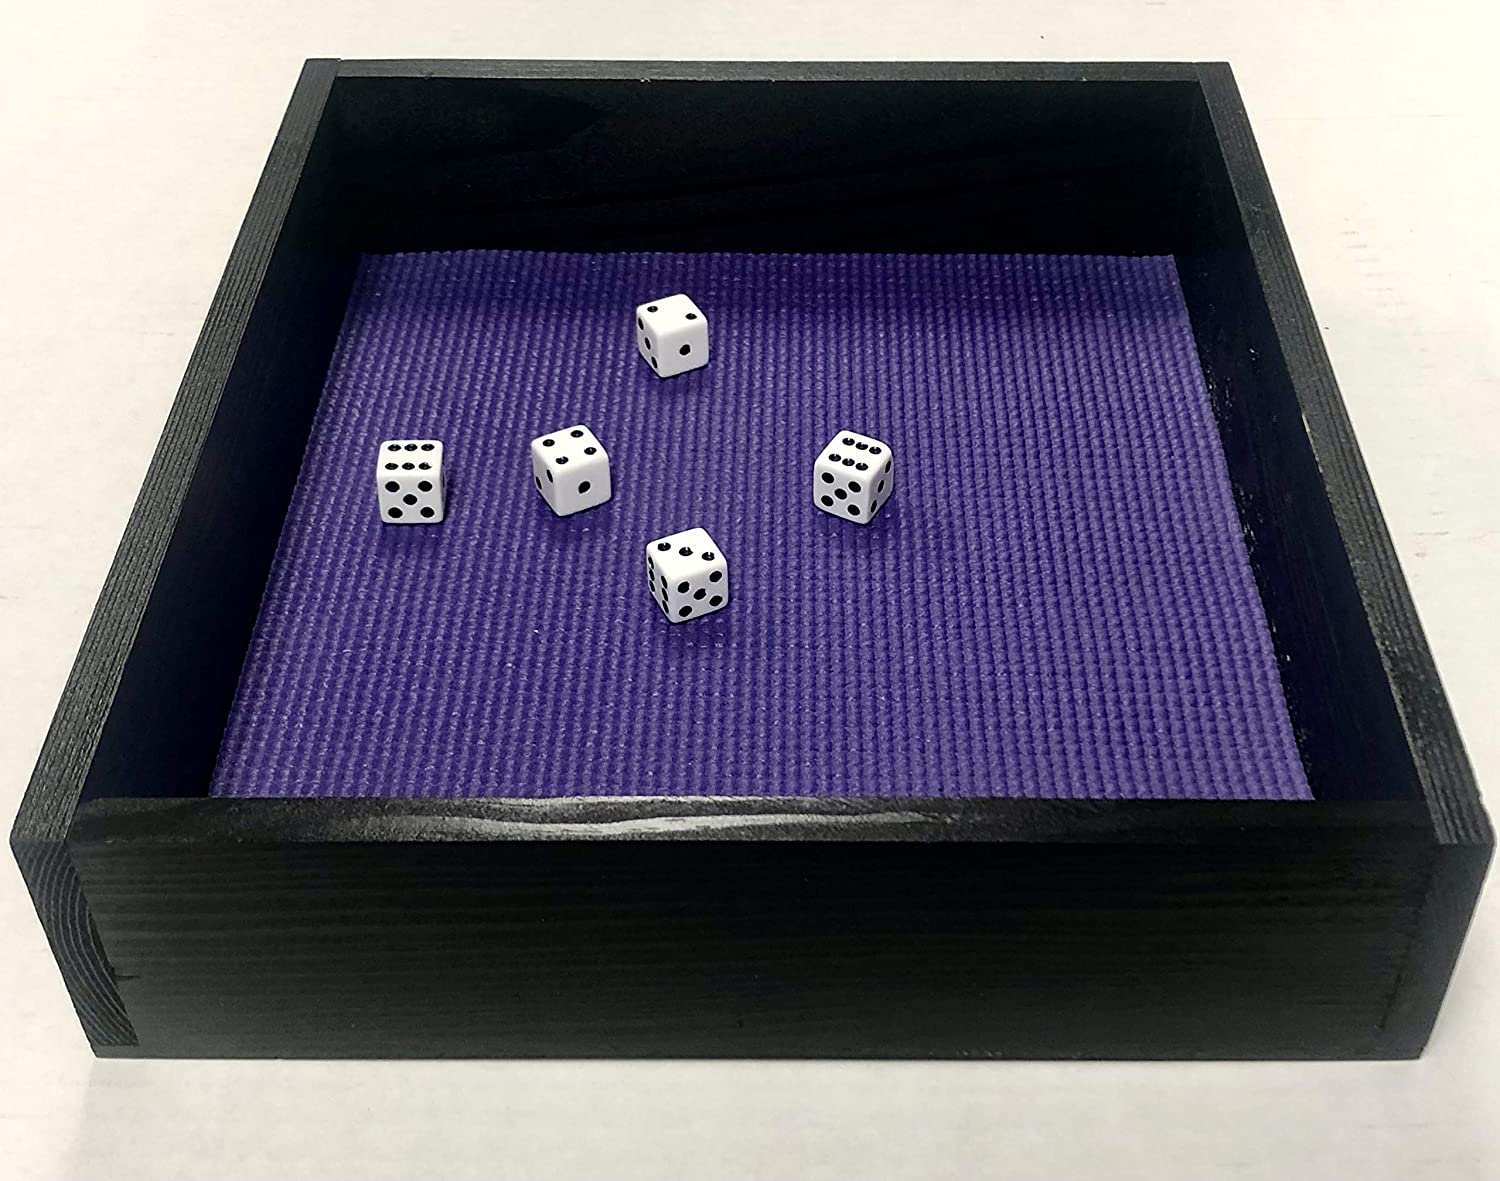 Yahtzee Farkle Challenge the lowest price of Japan ☆ Sales for sale Large Wood Table Top Game Box Tra Holder Dice